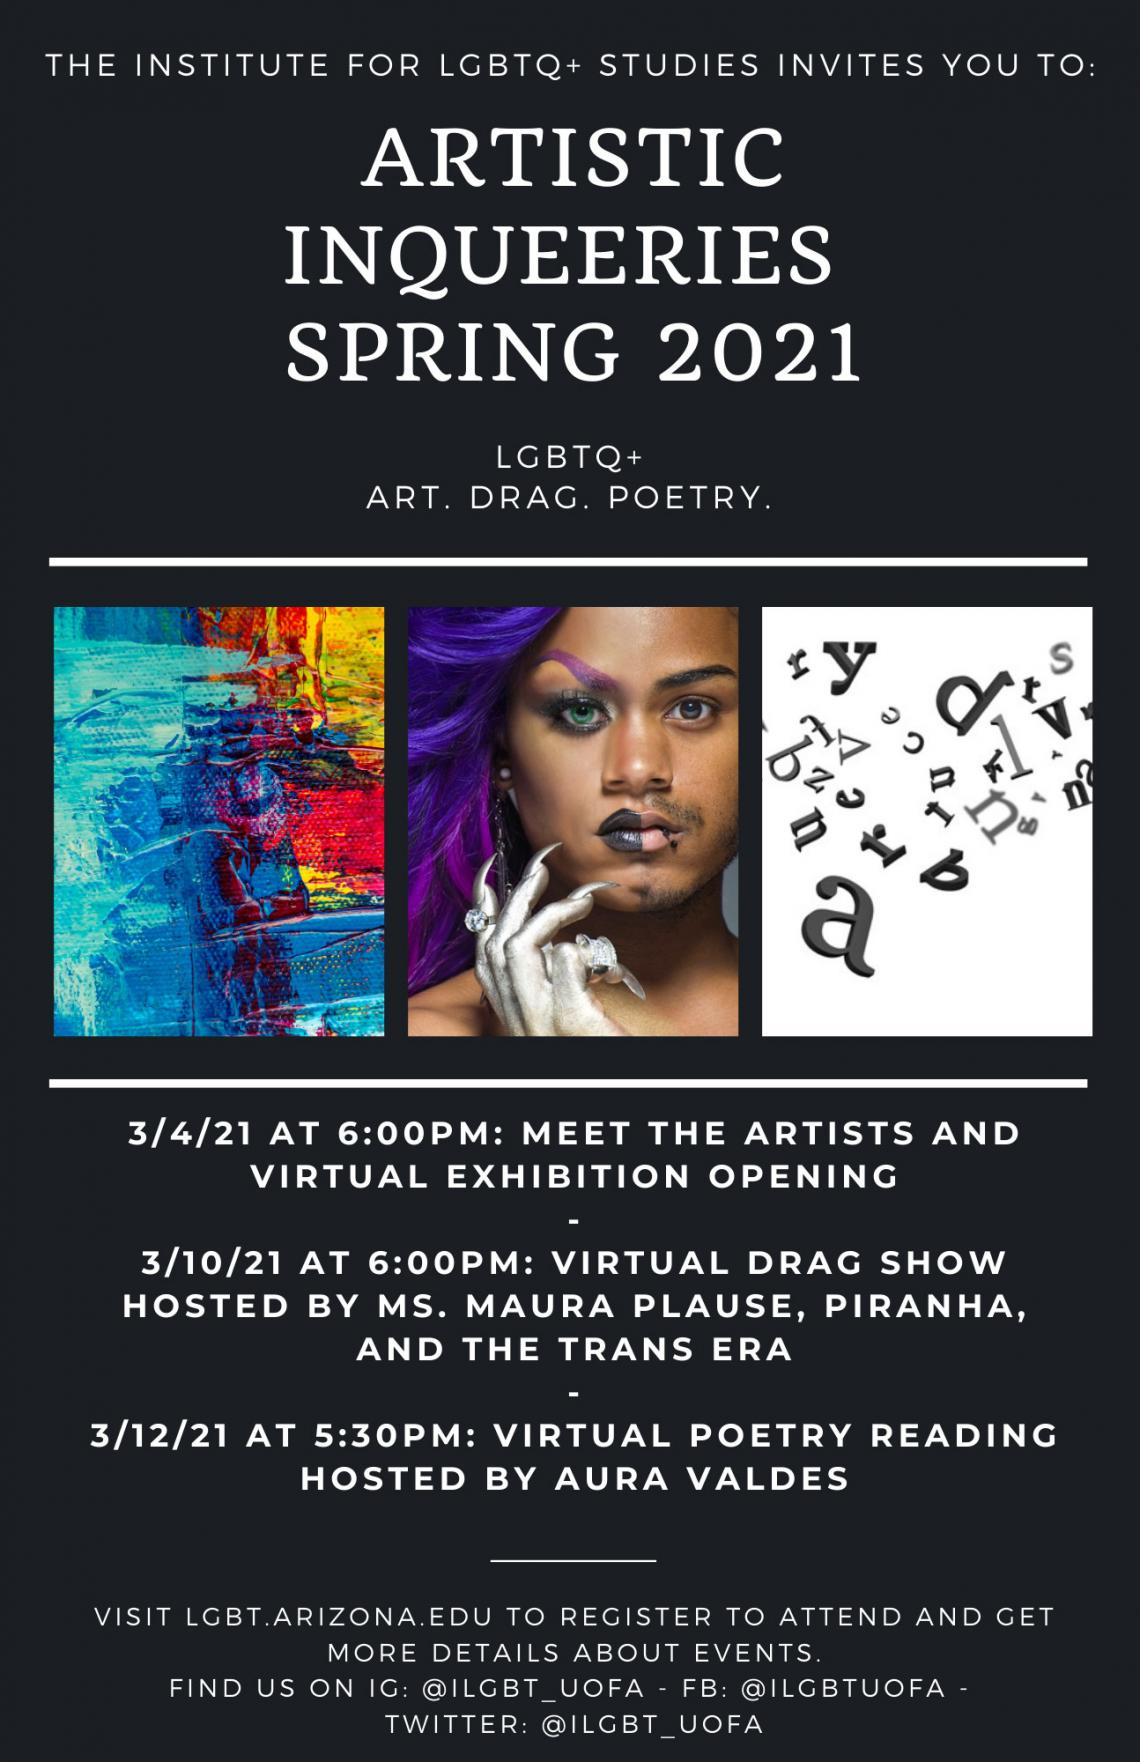 "The Institute for LGBTQ+ Studies invites you to: Artistic InQUEERies 2021. LGTBQ+ Art. Drag. Poetry."" Then there are three images: red, yellow, green, blue, and teal oil paint layered on a canvas; a Black drag performer with half their face in makeup and"